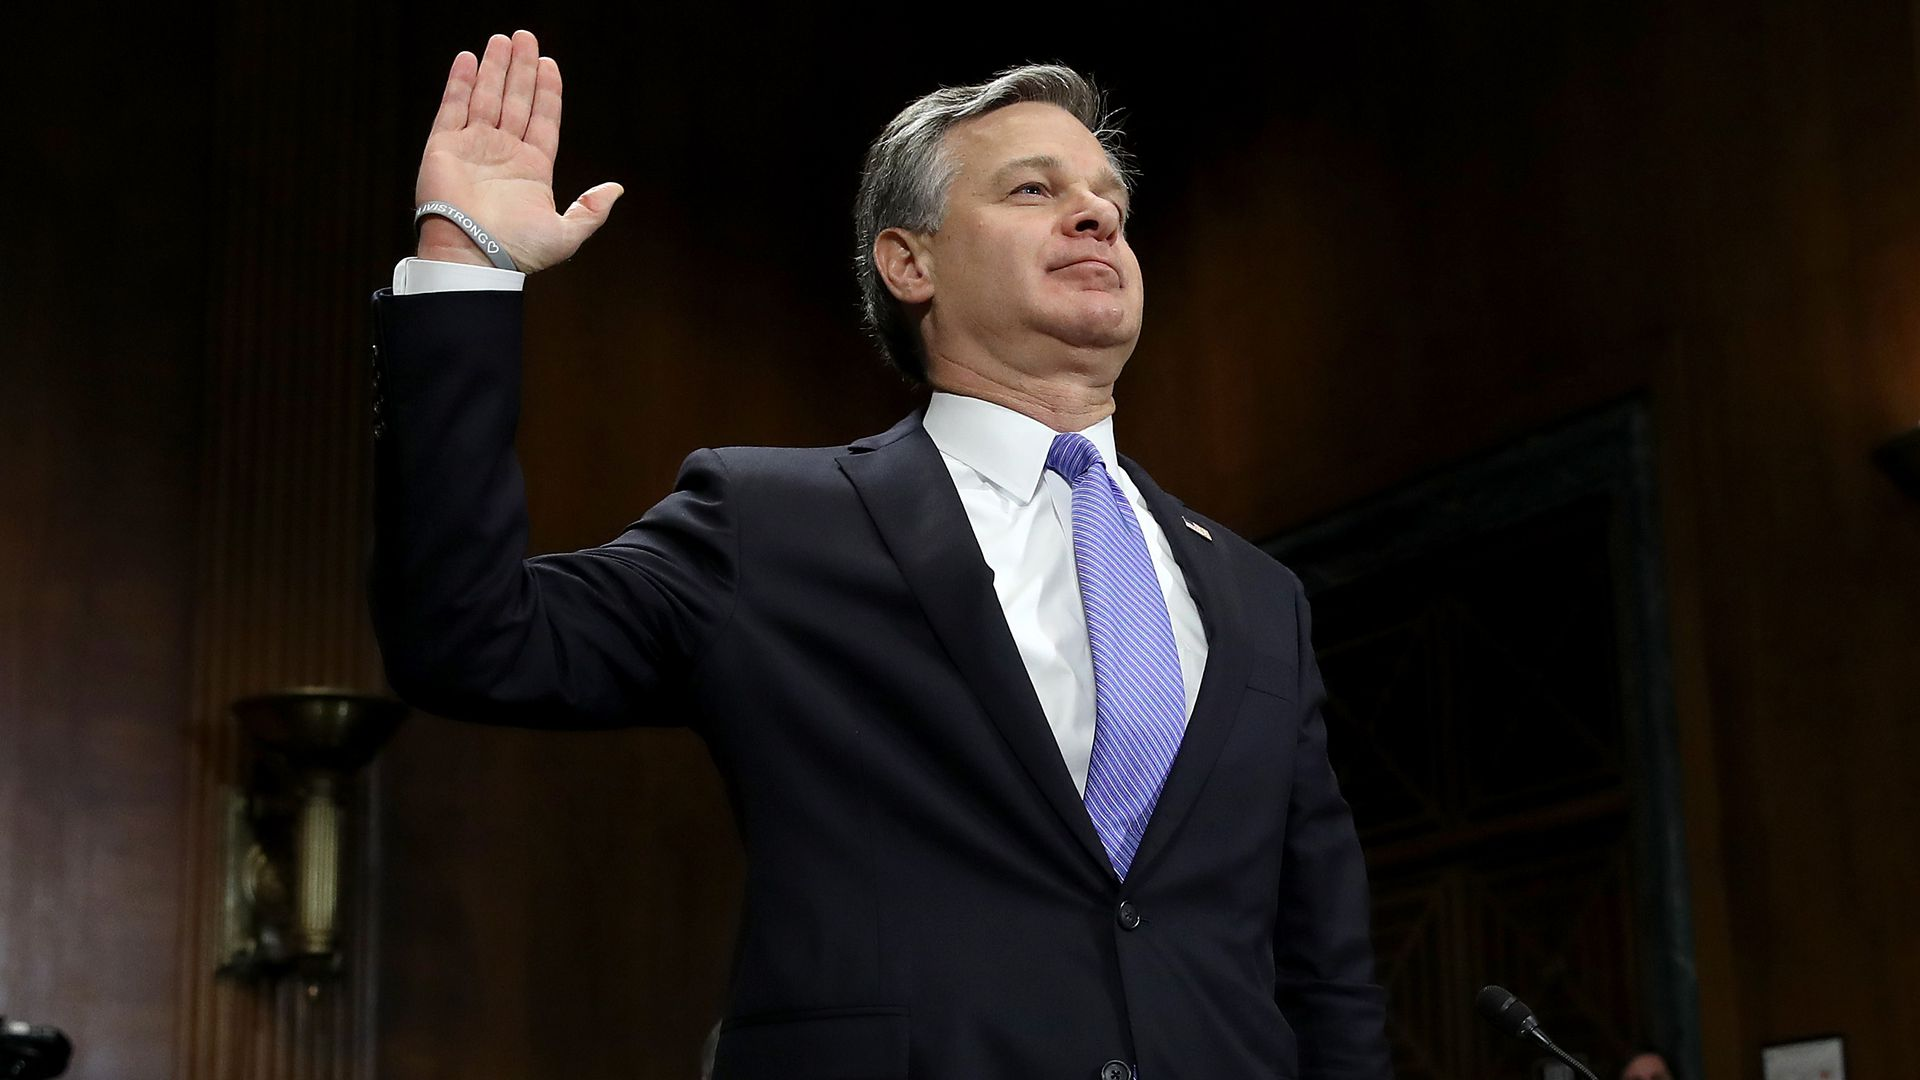 Wray being sworn in.